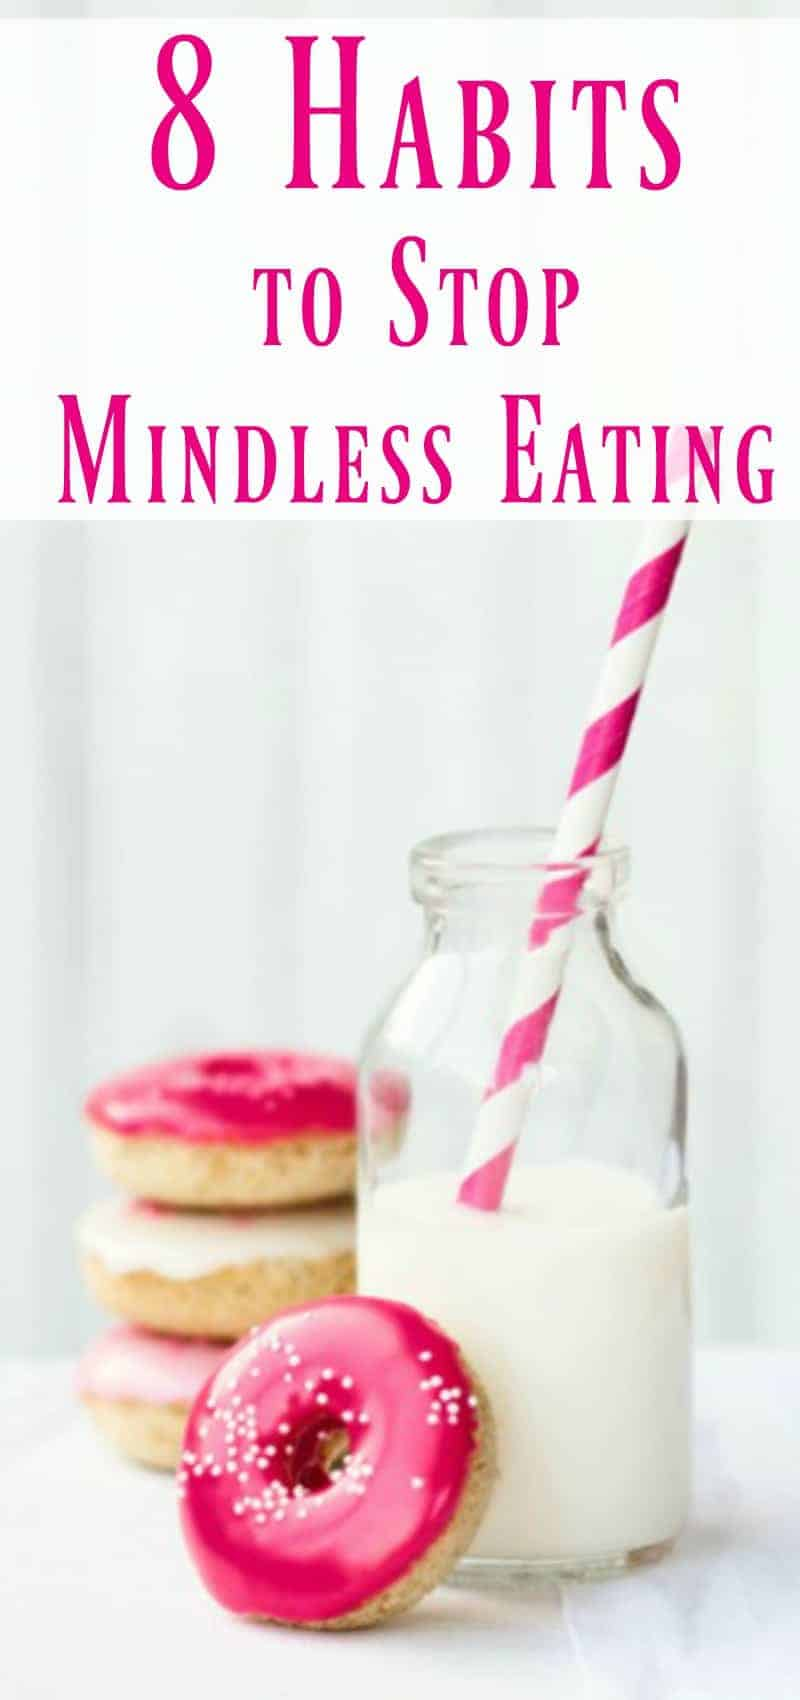 8 habits to stop mindless eating